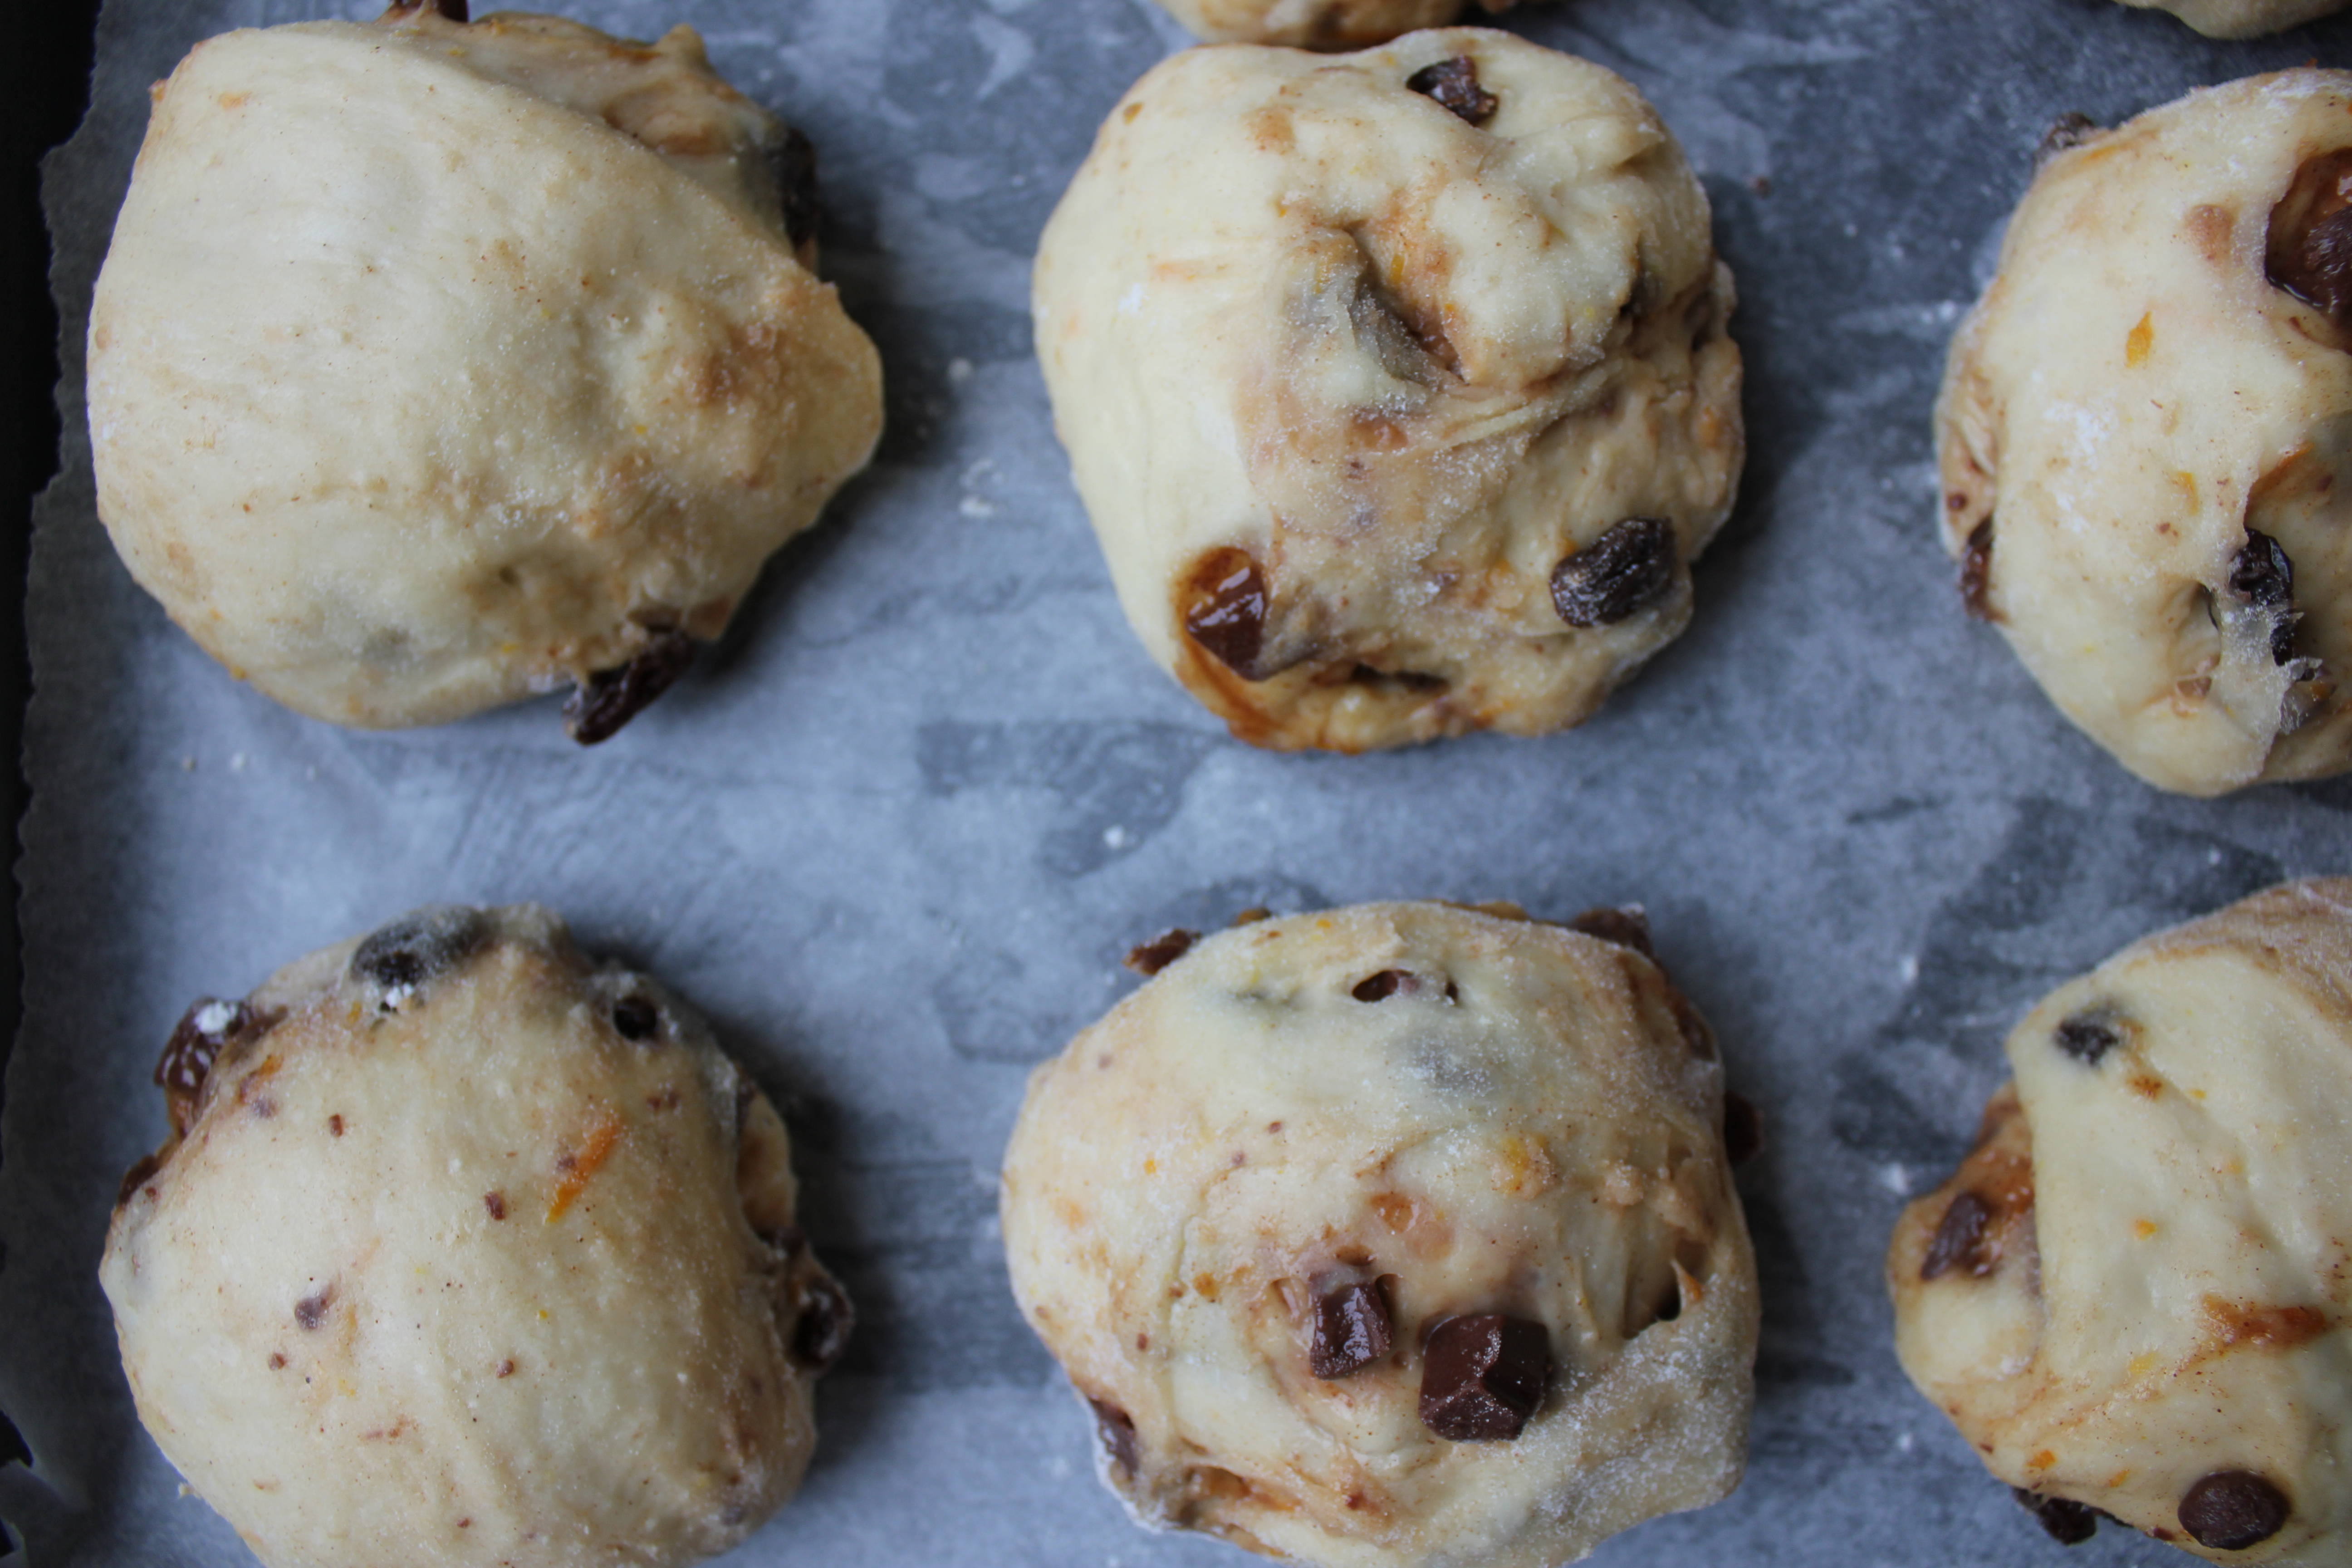 Chocolate and spice hot cross buns